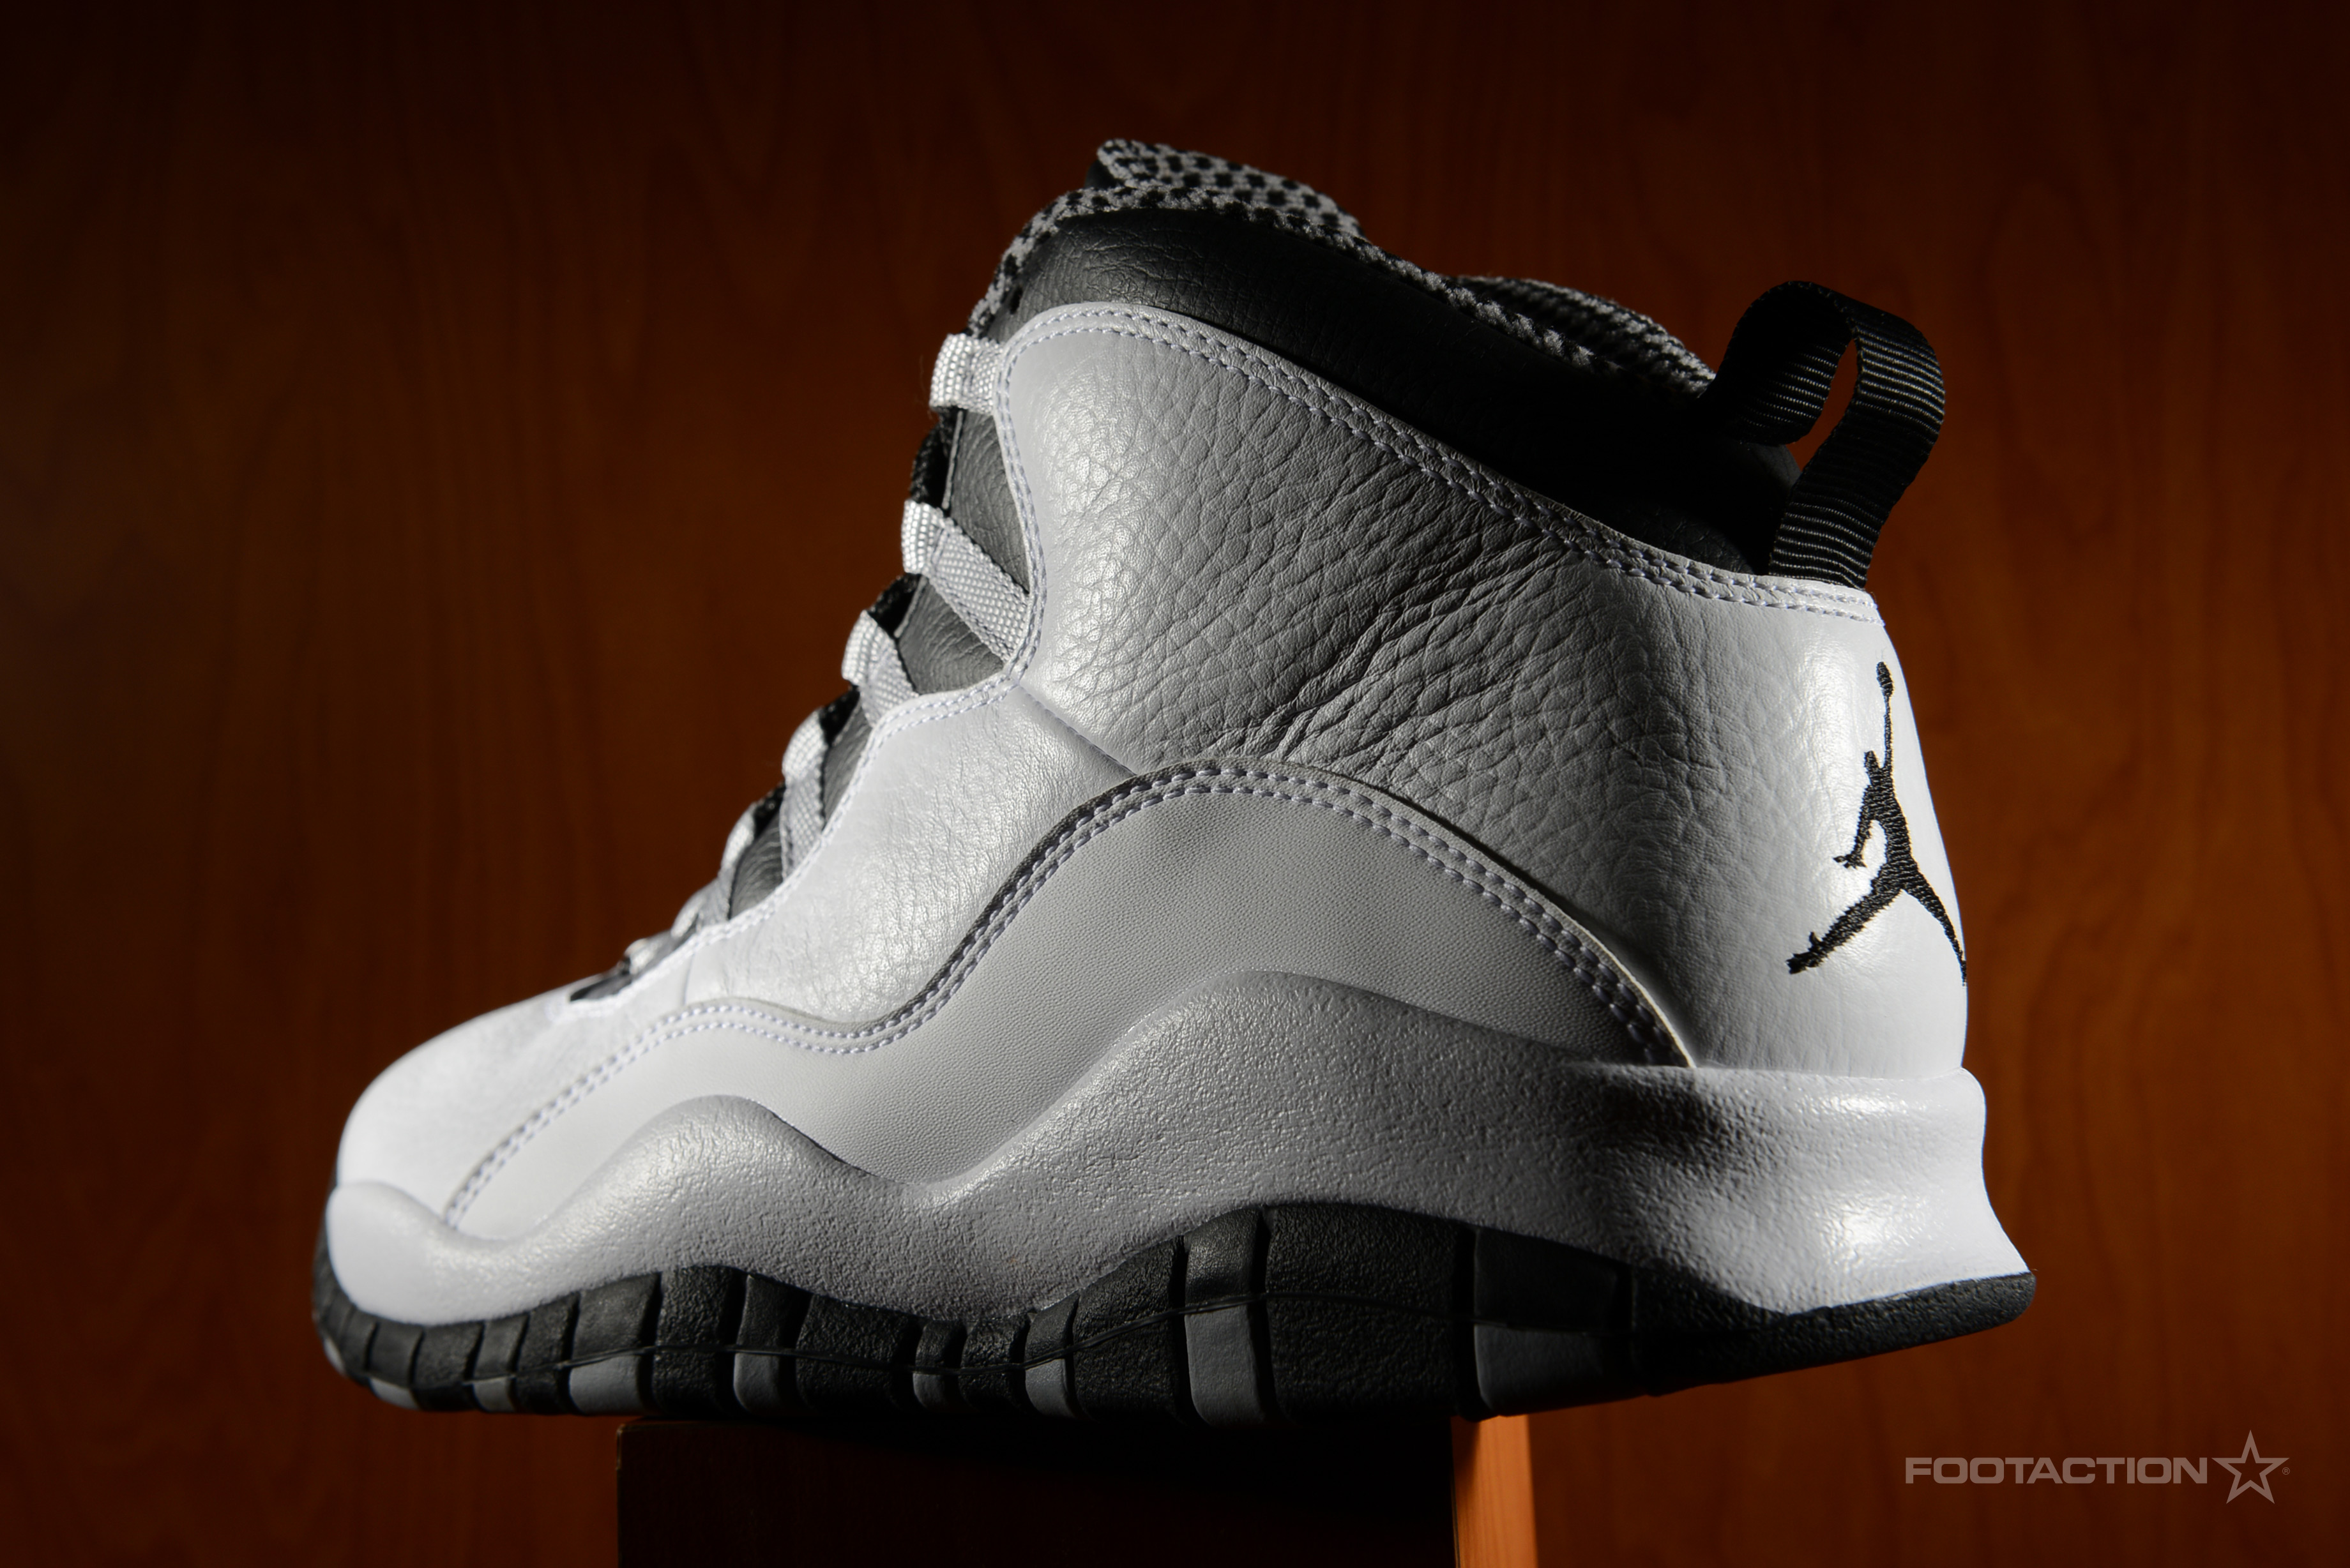 separation shoes 693fe 15335 low price air jordan 10 retro steelfootaction star club f67c7 a38a6